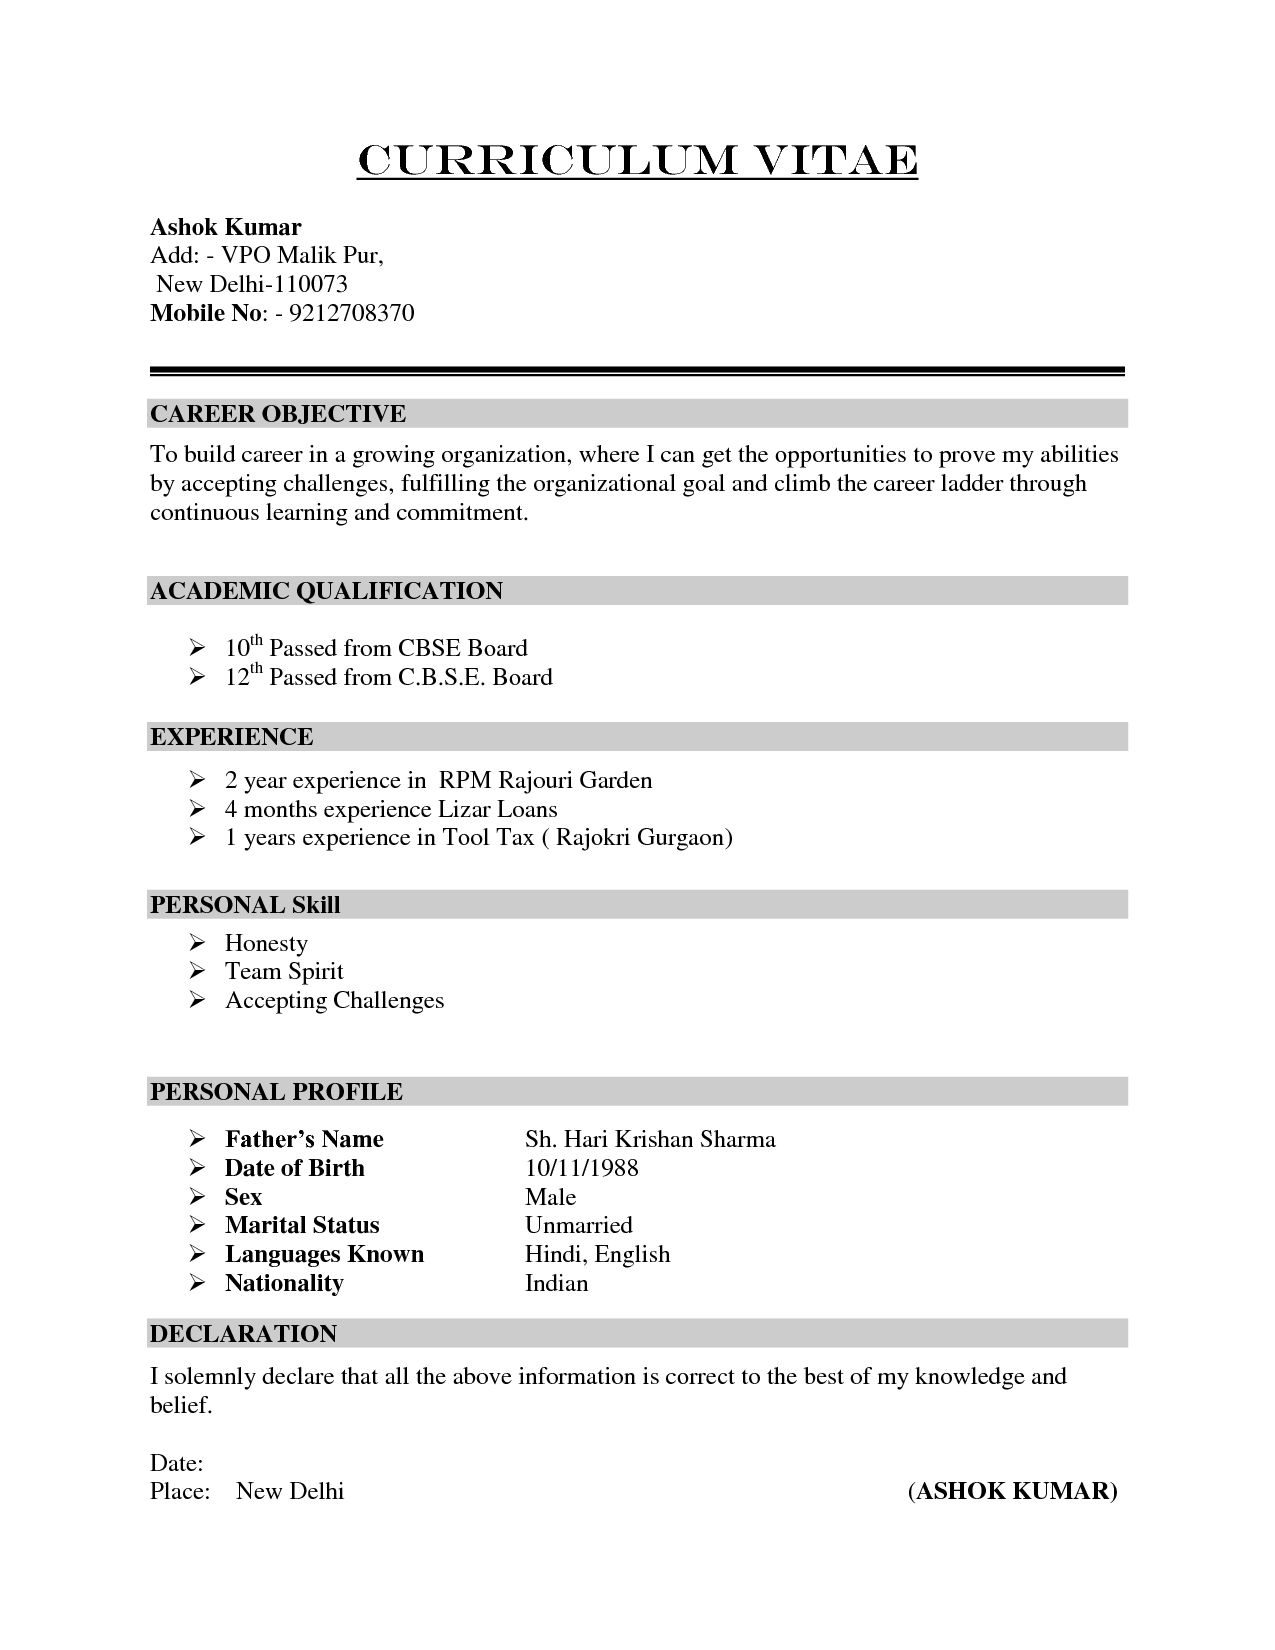 Resume Free Maker Online Create Professional Resumes Smart Builder  Screenshot Joseph Paul Resumecv  Create A Professional Resume